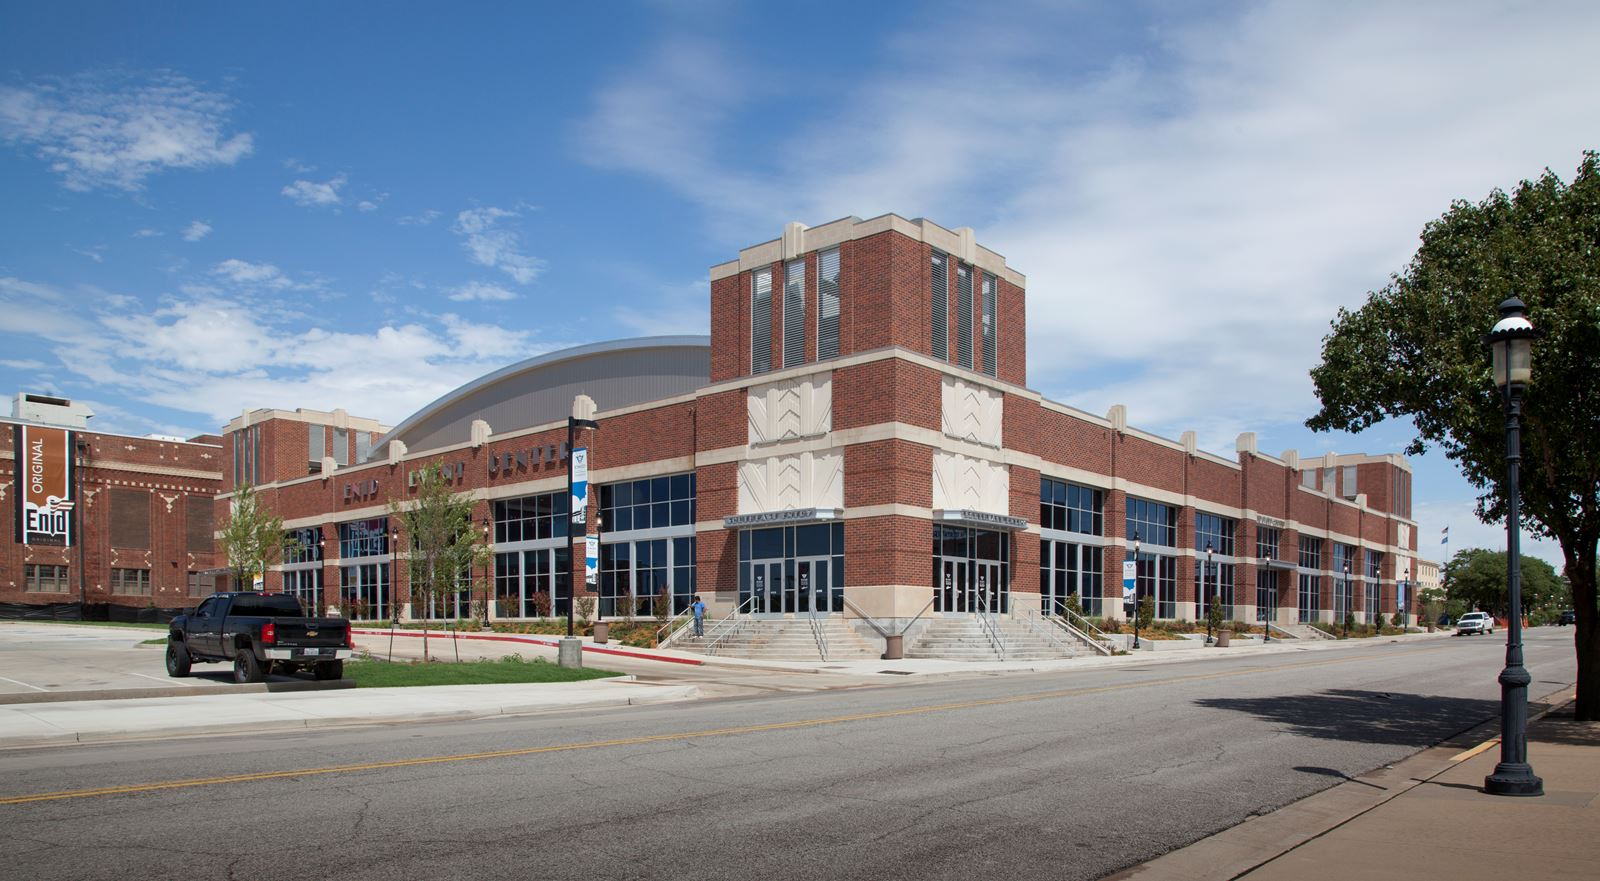 Convergence design kansas city architects for Architecture firms kc